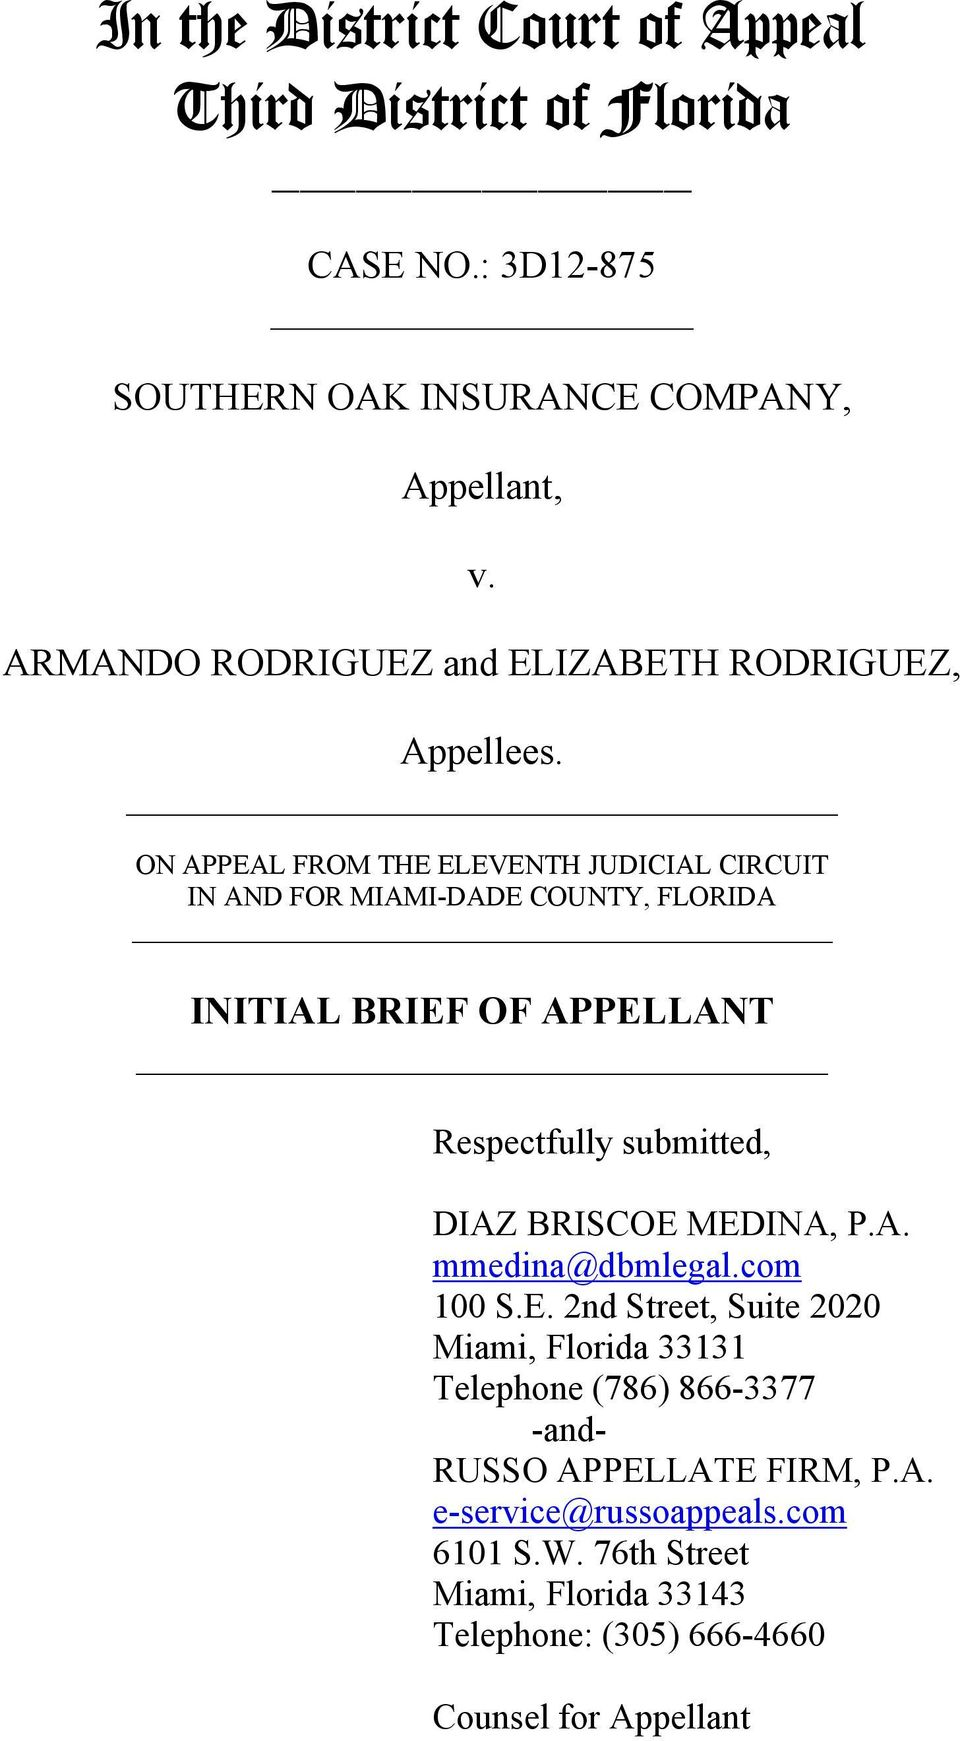 ON APPEAL FROM THE ELEVENTH JUDICIAL CIRCUIT IN AND FOR MIAMI-DADE COUNTY, FLORIDA INITIAL BRIEF OF APPELLANT Respectfully submitted, DIAZ BRISCOE